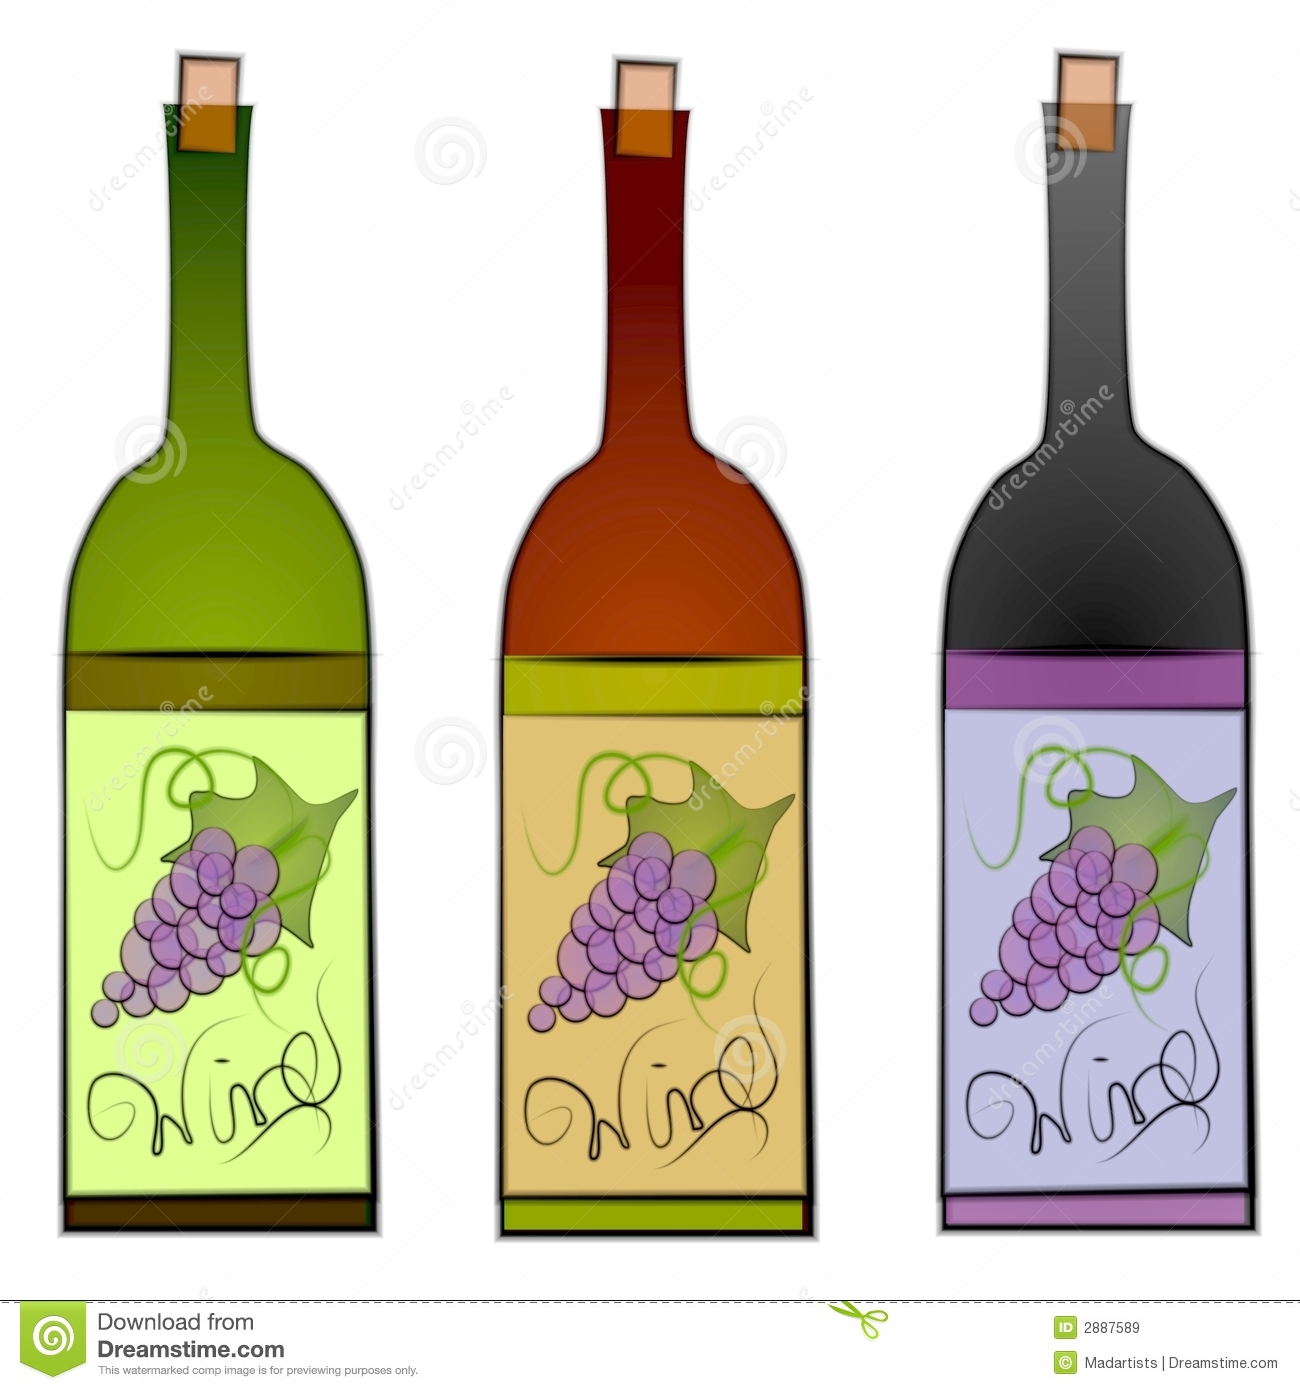 Bottles clipart #17, Download drawings